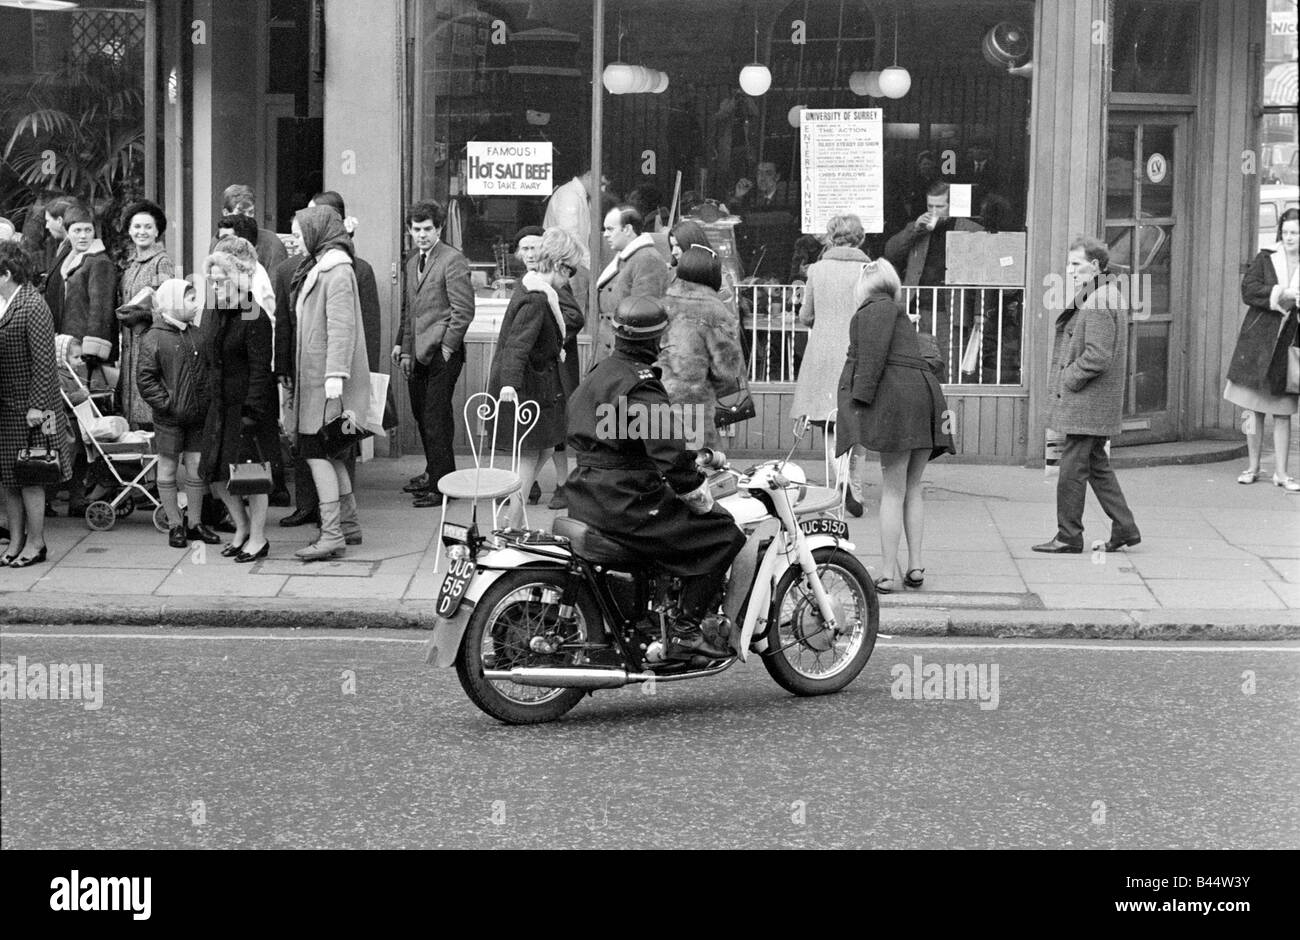 Motorcycle Policeman Orders Three Models Wearing Swimsuits Sitting Outside Guys And Dolls Kings Road Chelsea London